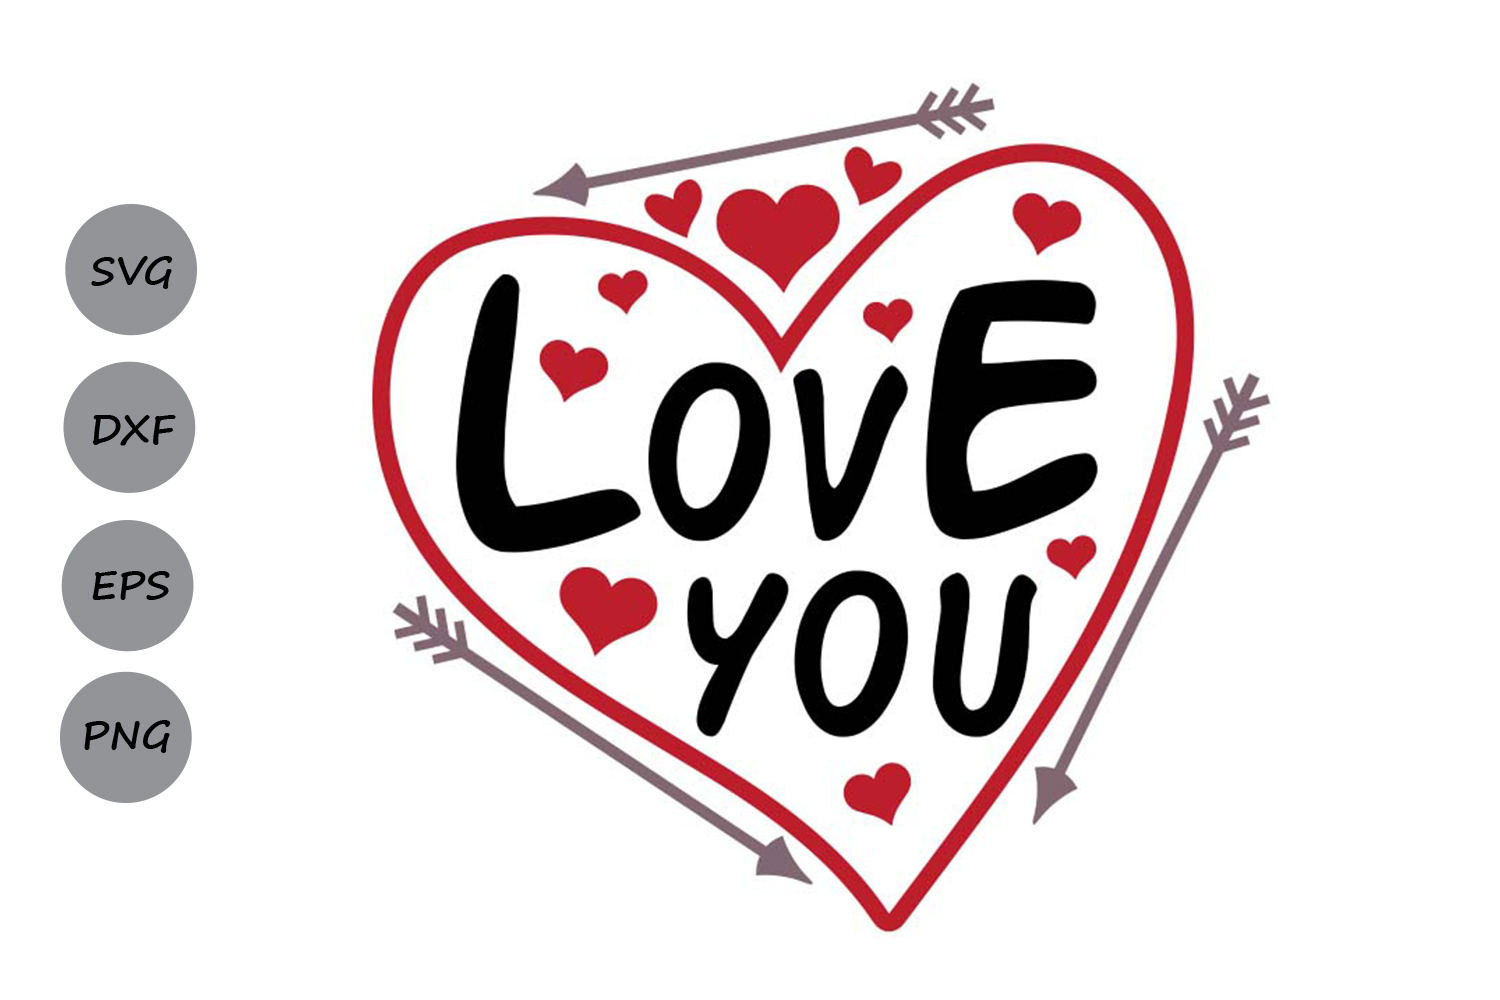 Download Free Love You Graphic By Cosmosfineart Creative Fabrica for Cricut Explore, Silhouette and other cutting machines.